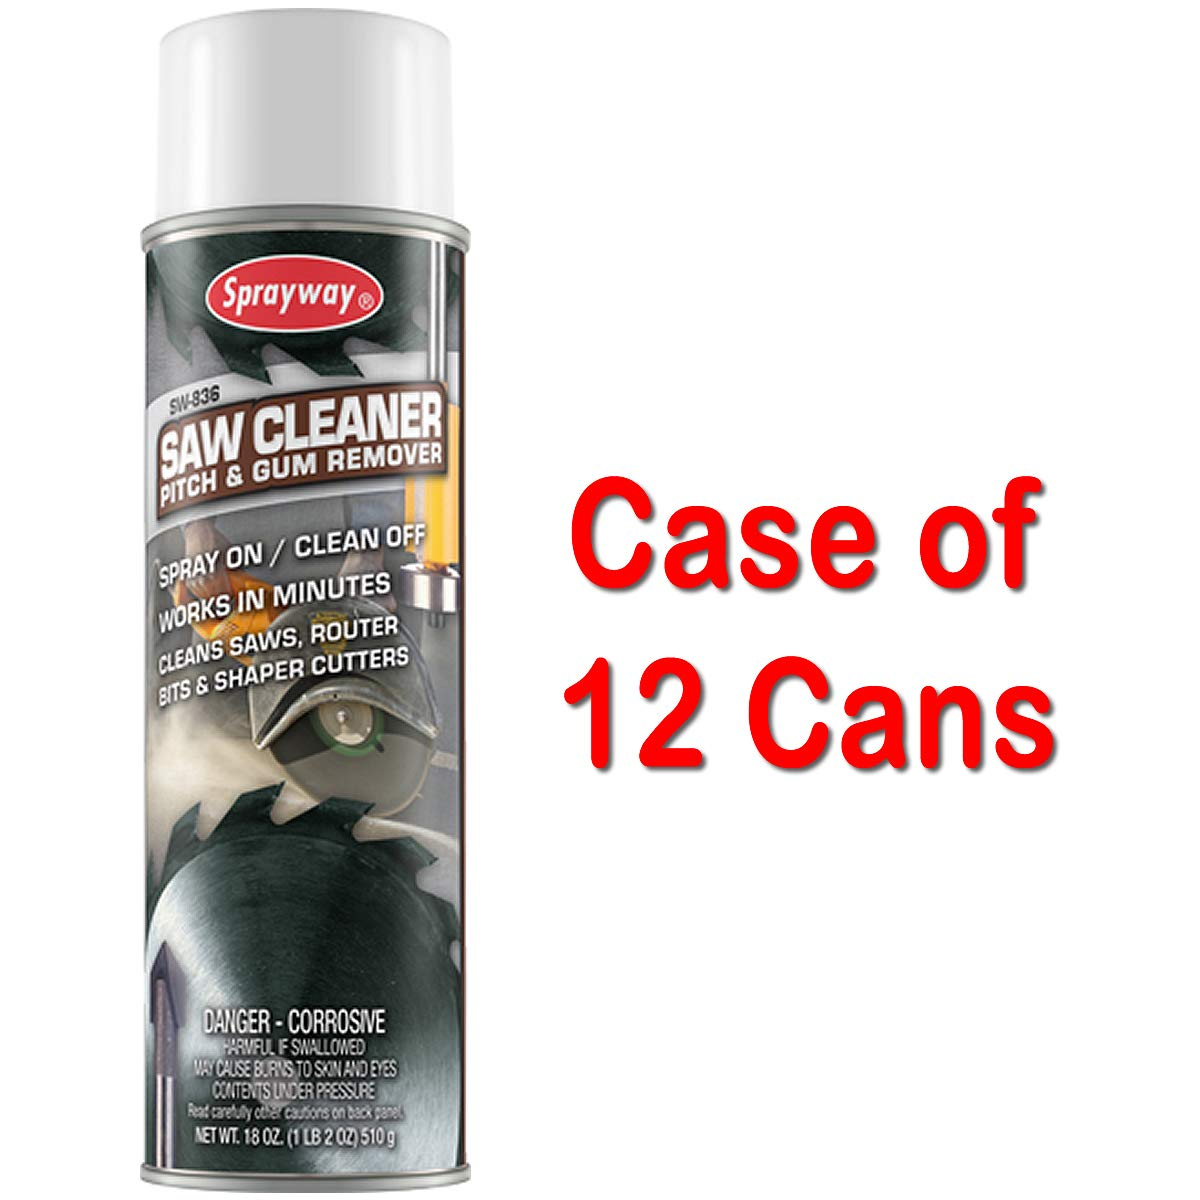 Saw Cleaner and Pitch & Gum Remover - Case:12